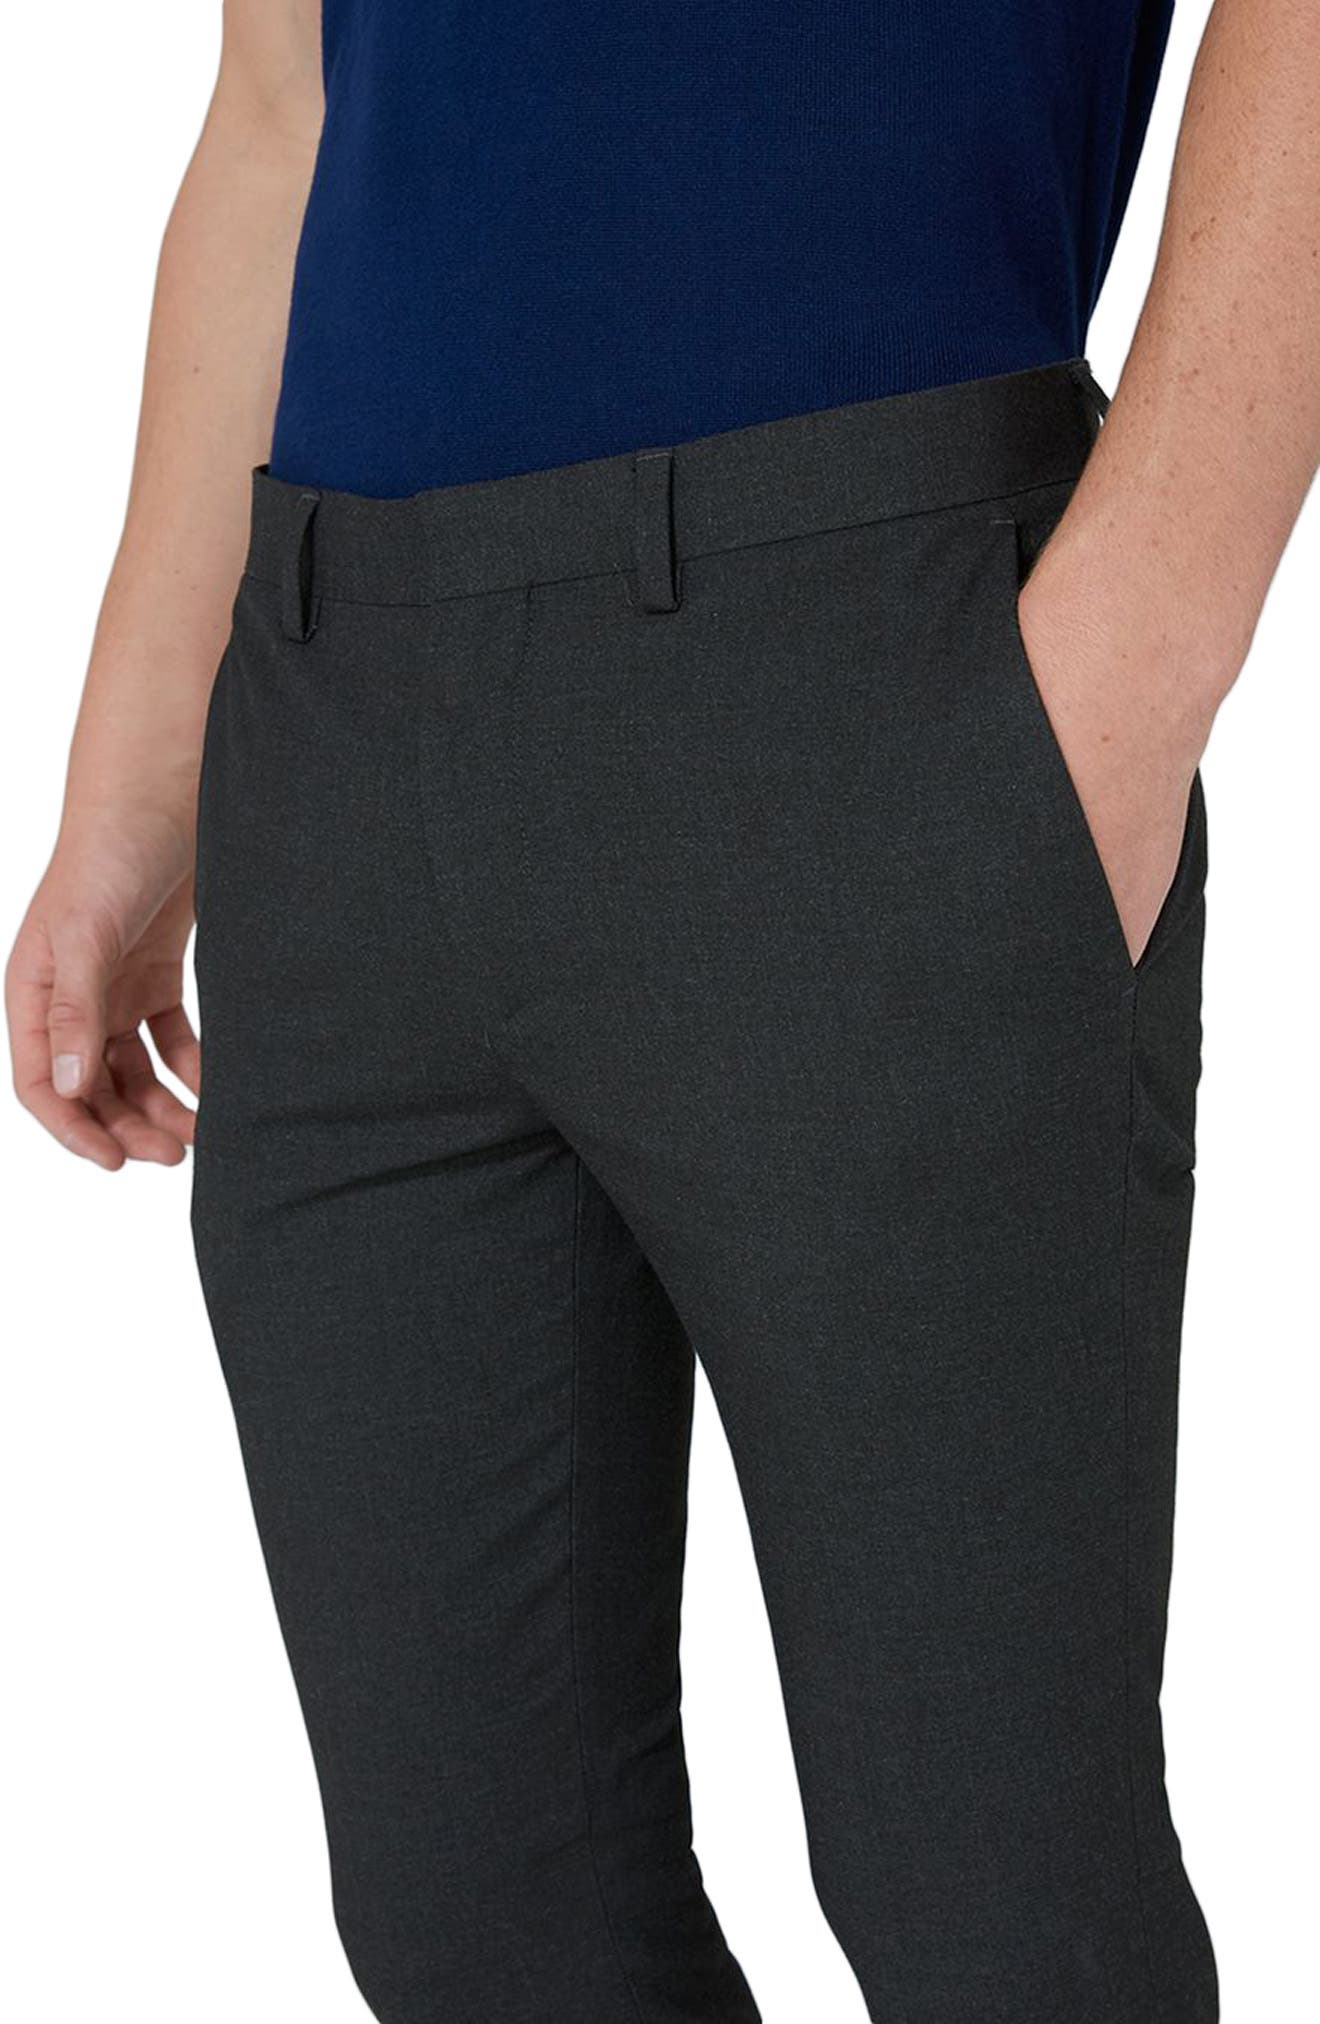 Ultra Skinny Fit Trousers,                             Alternate thumbnail 3, color,                             021